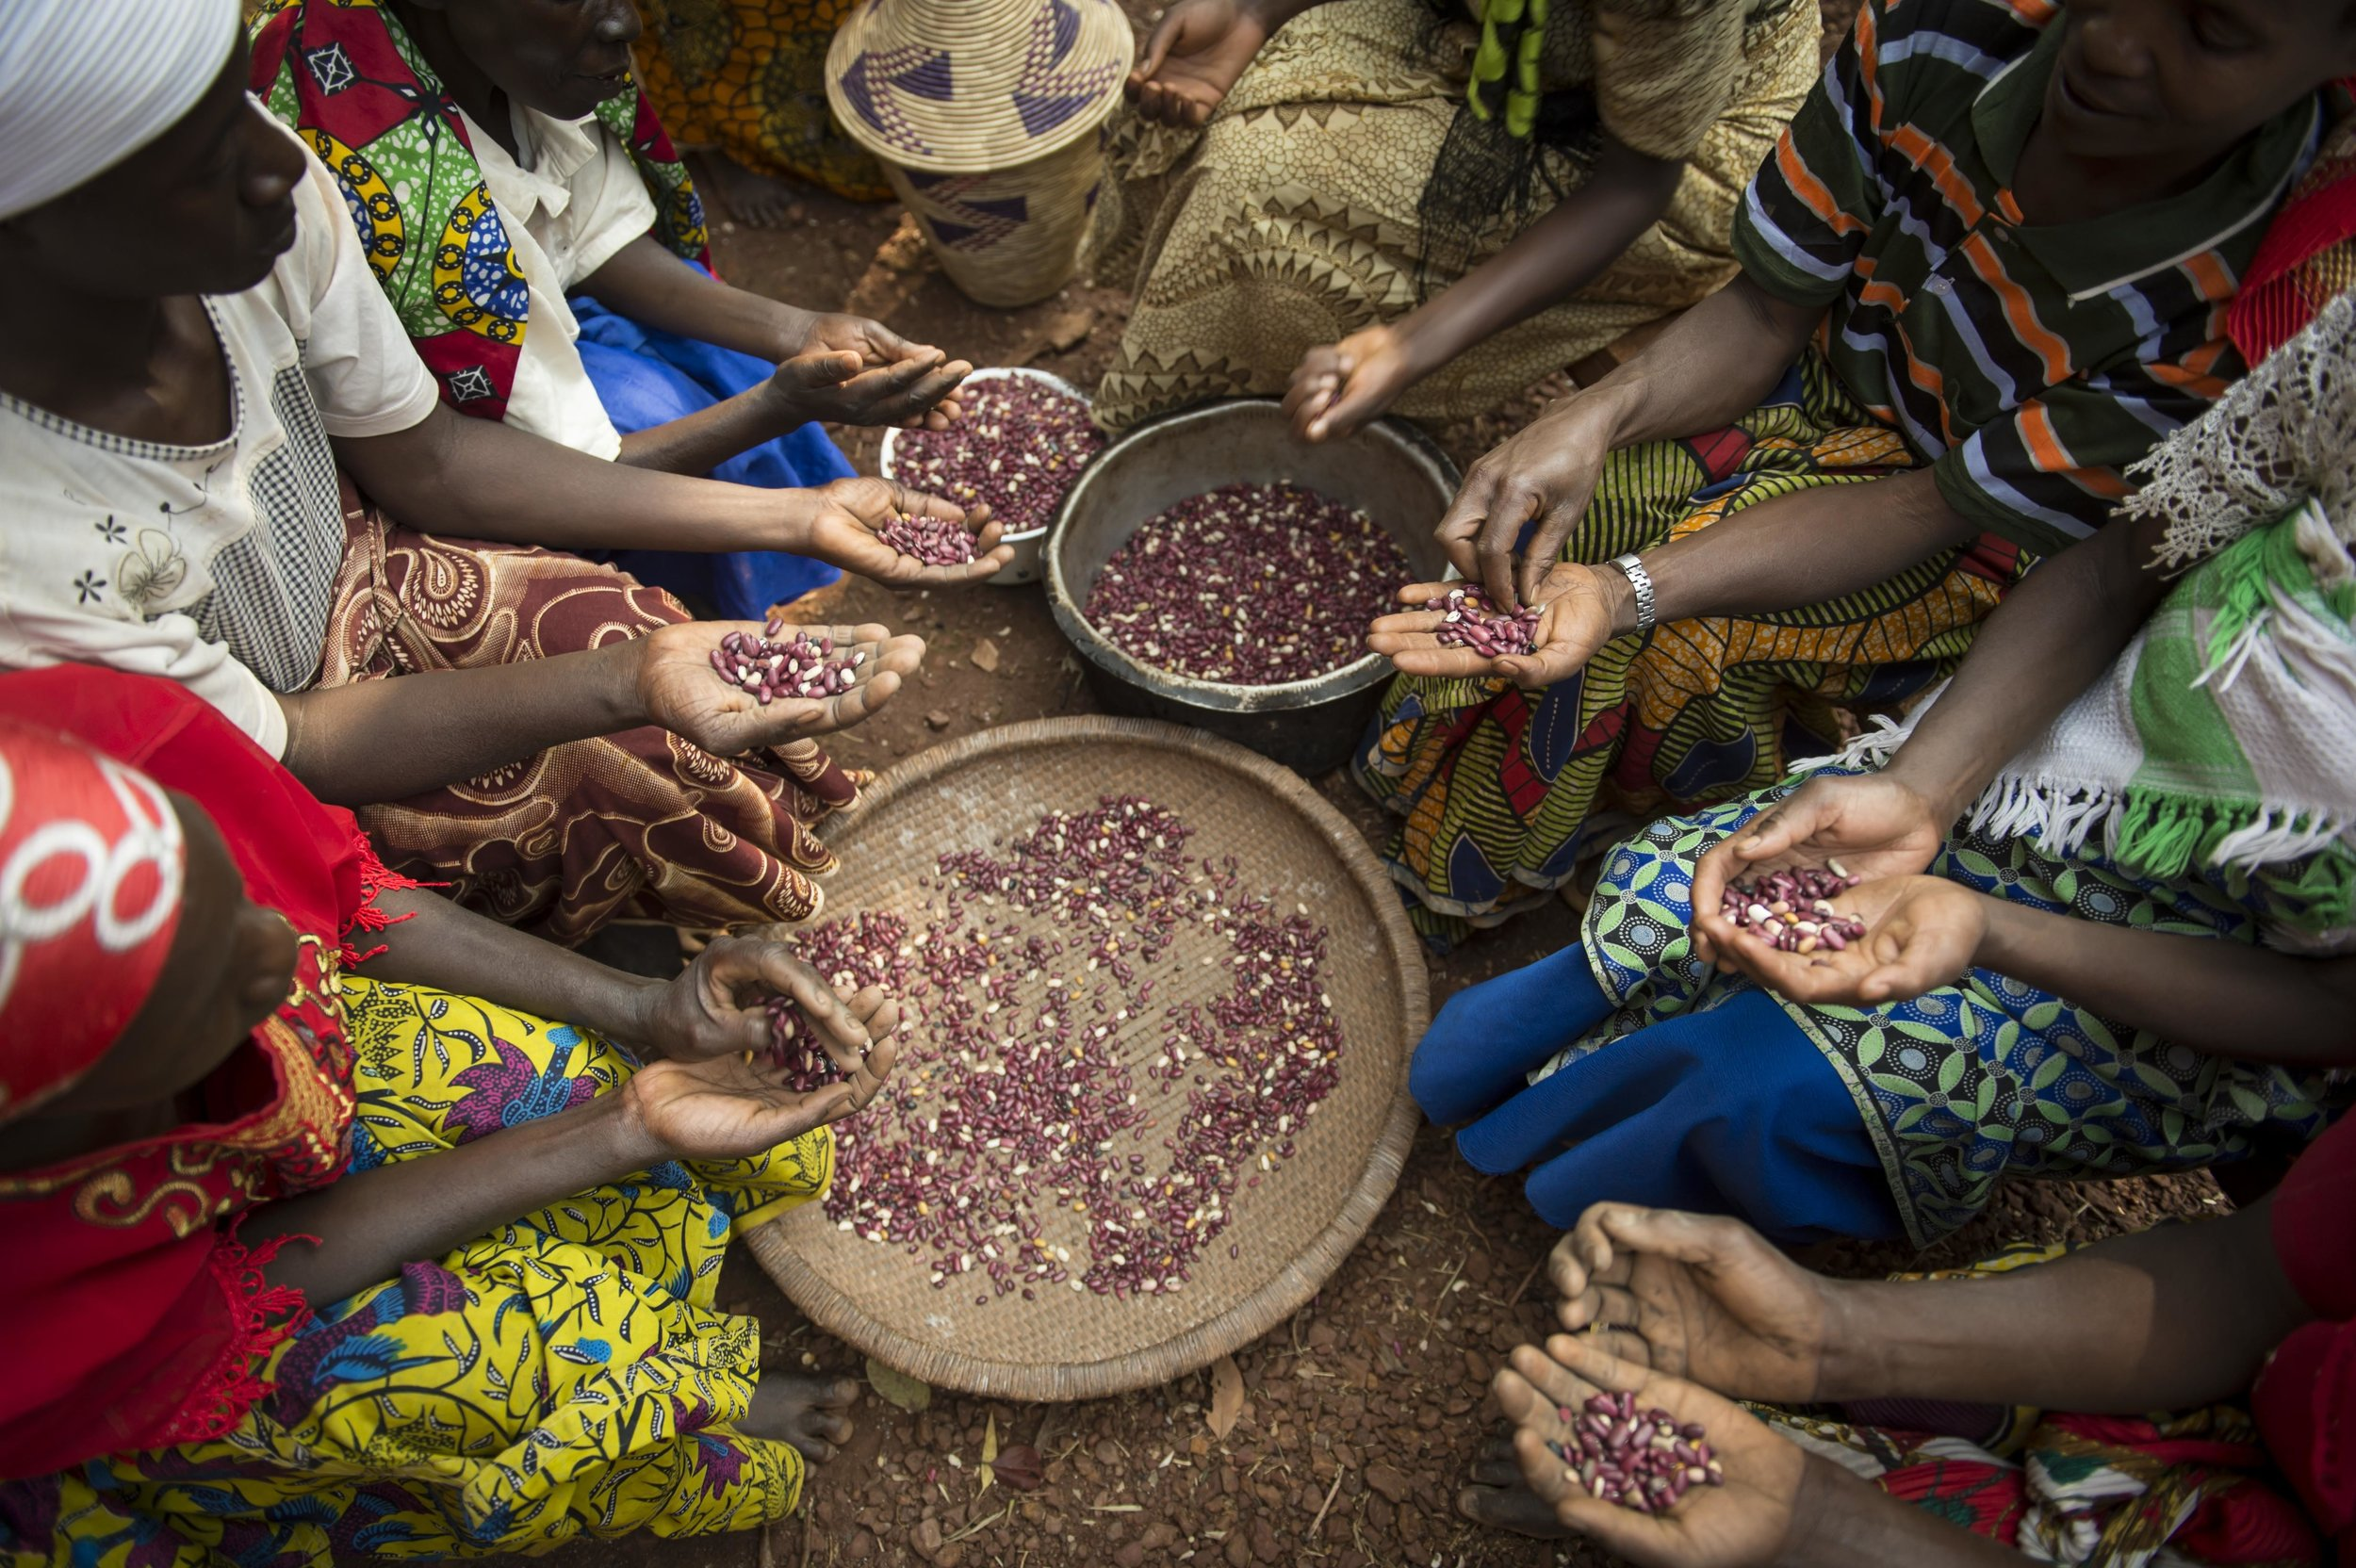 $90  // Give a refugee family in Congo seeds to grow food for their families